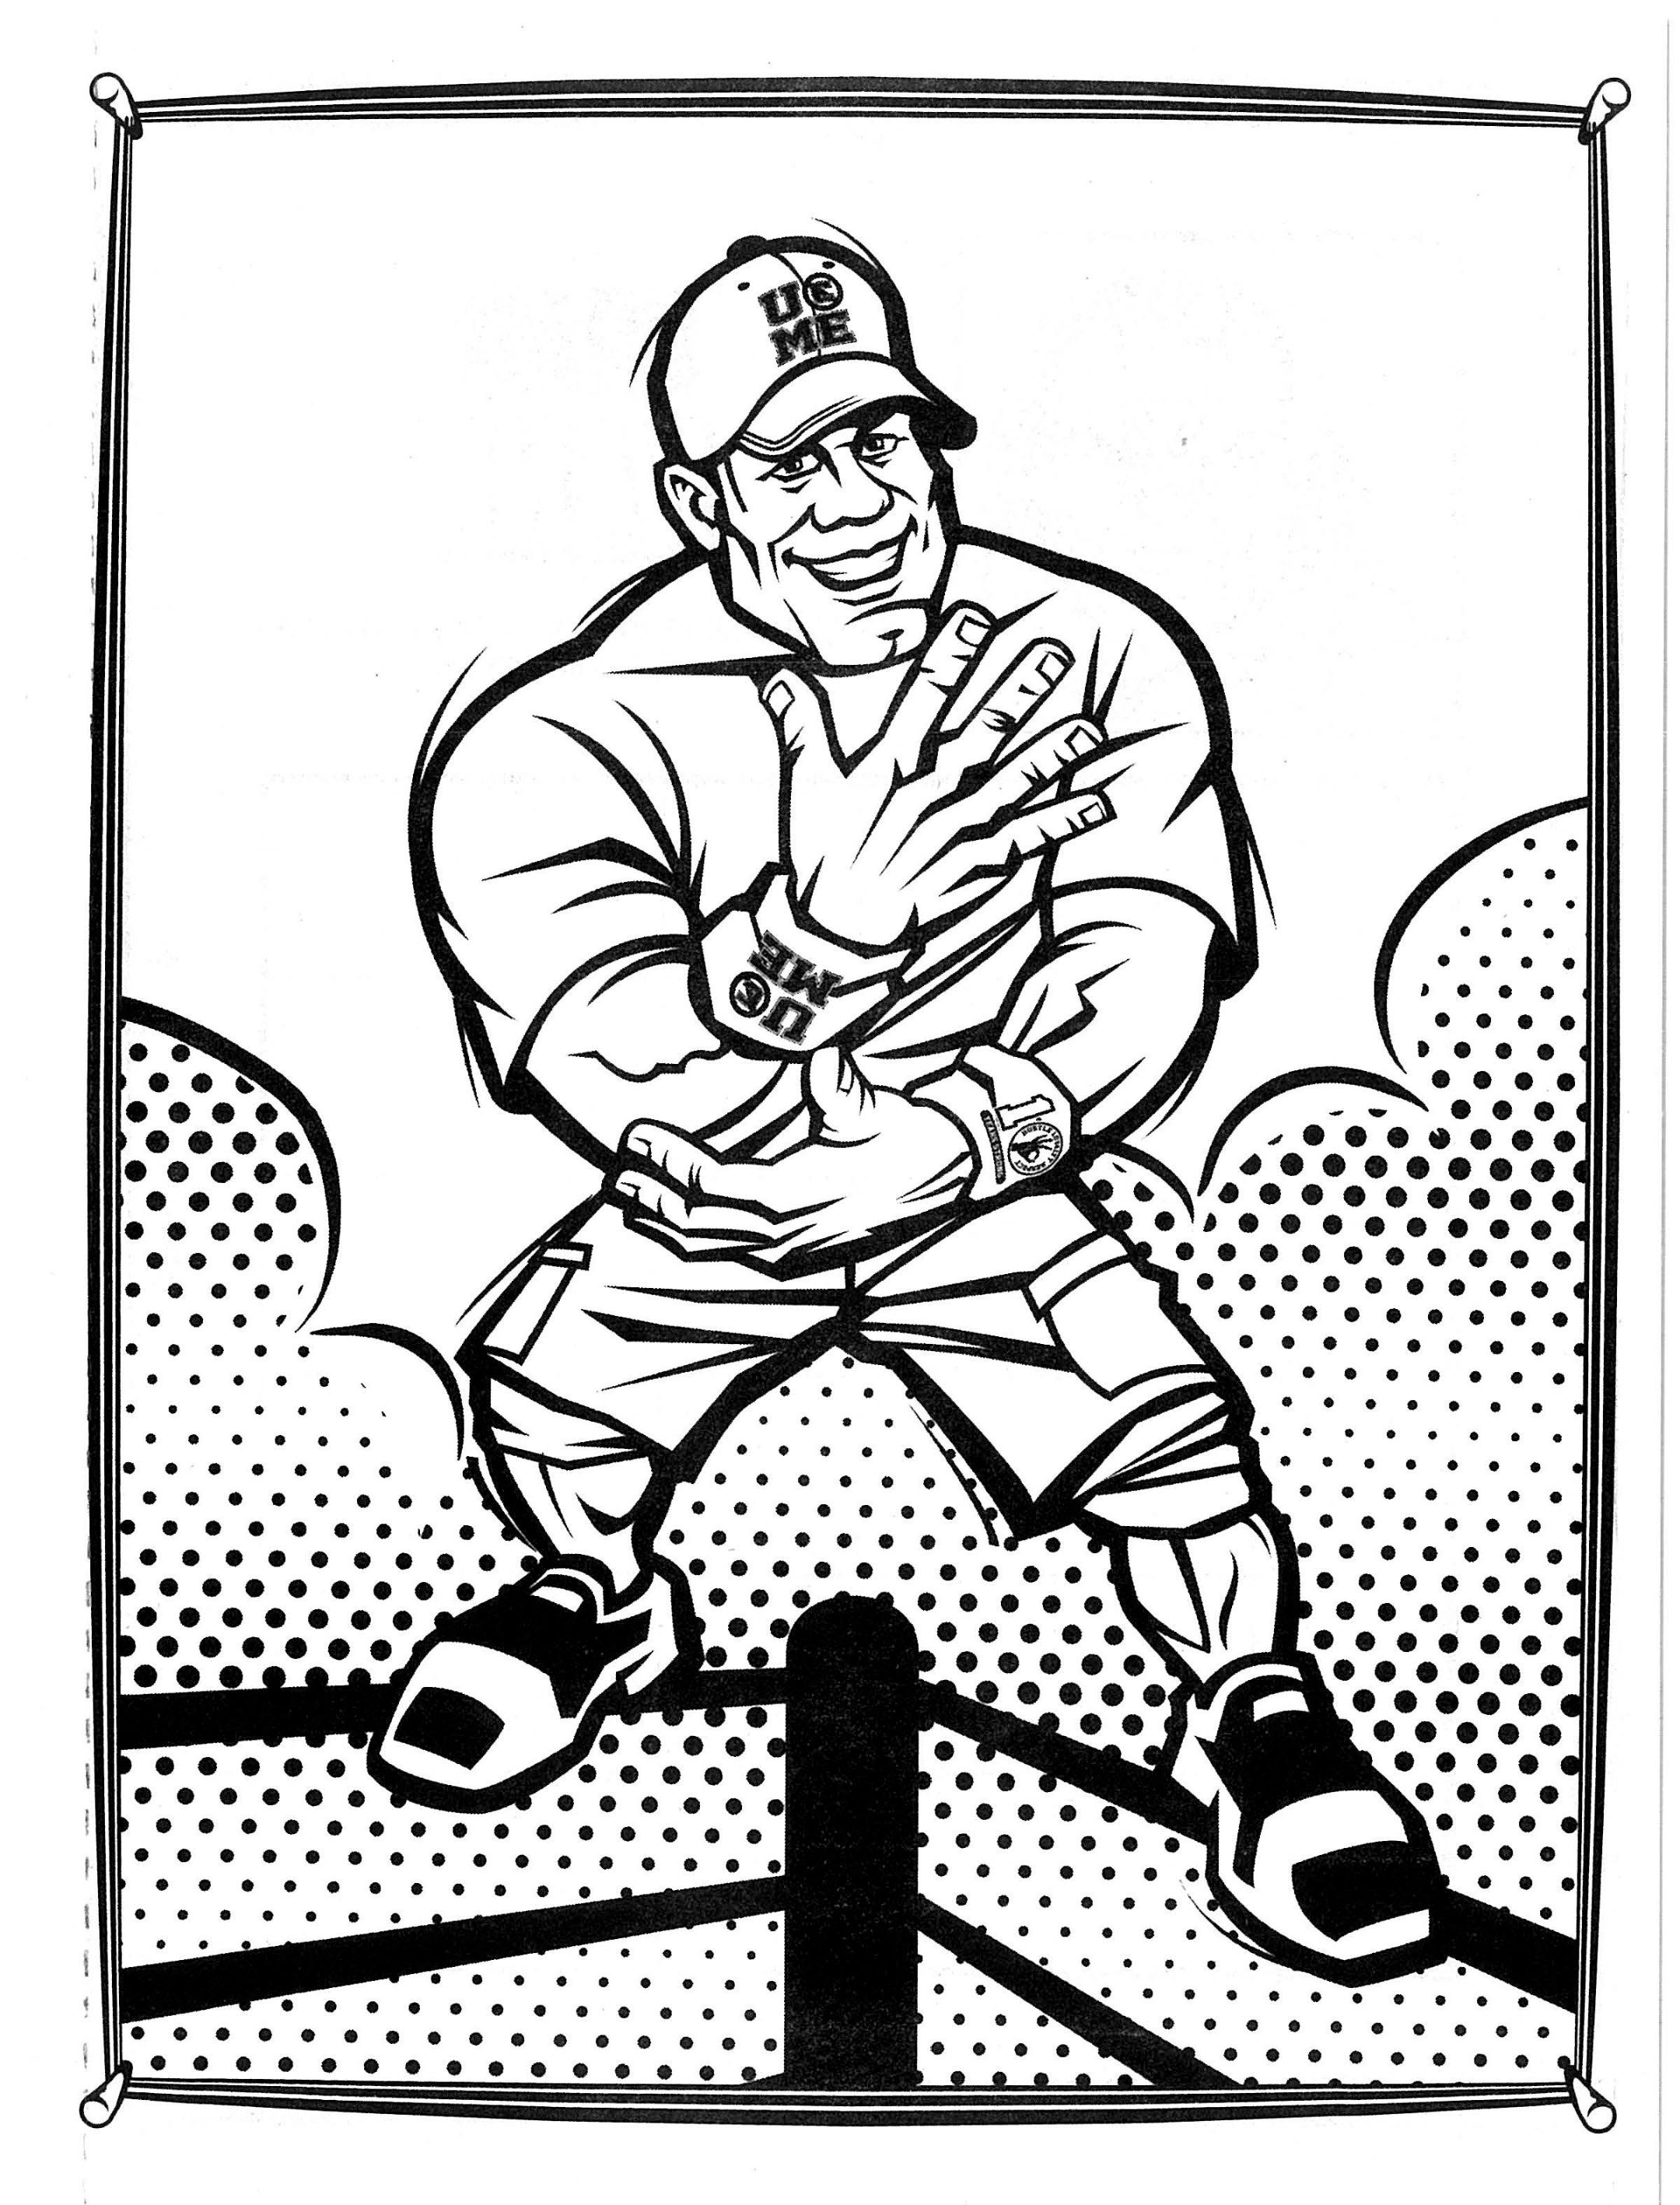 coloring pages wwe free printable wwe coloring pages for kids coloring wwe pages